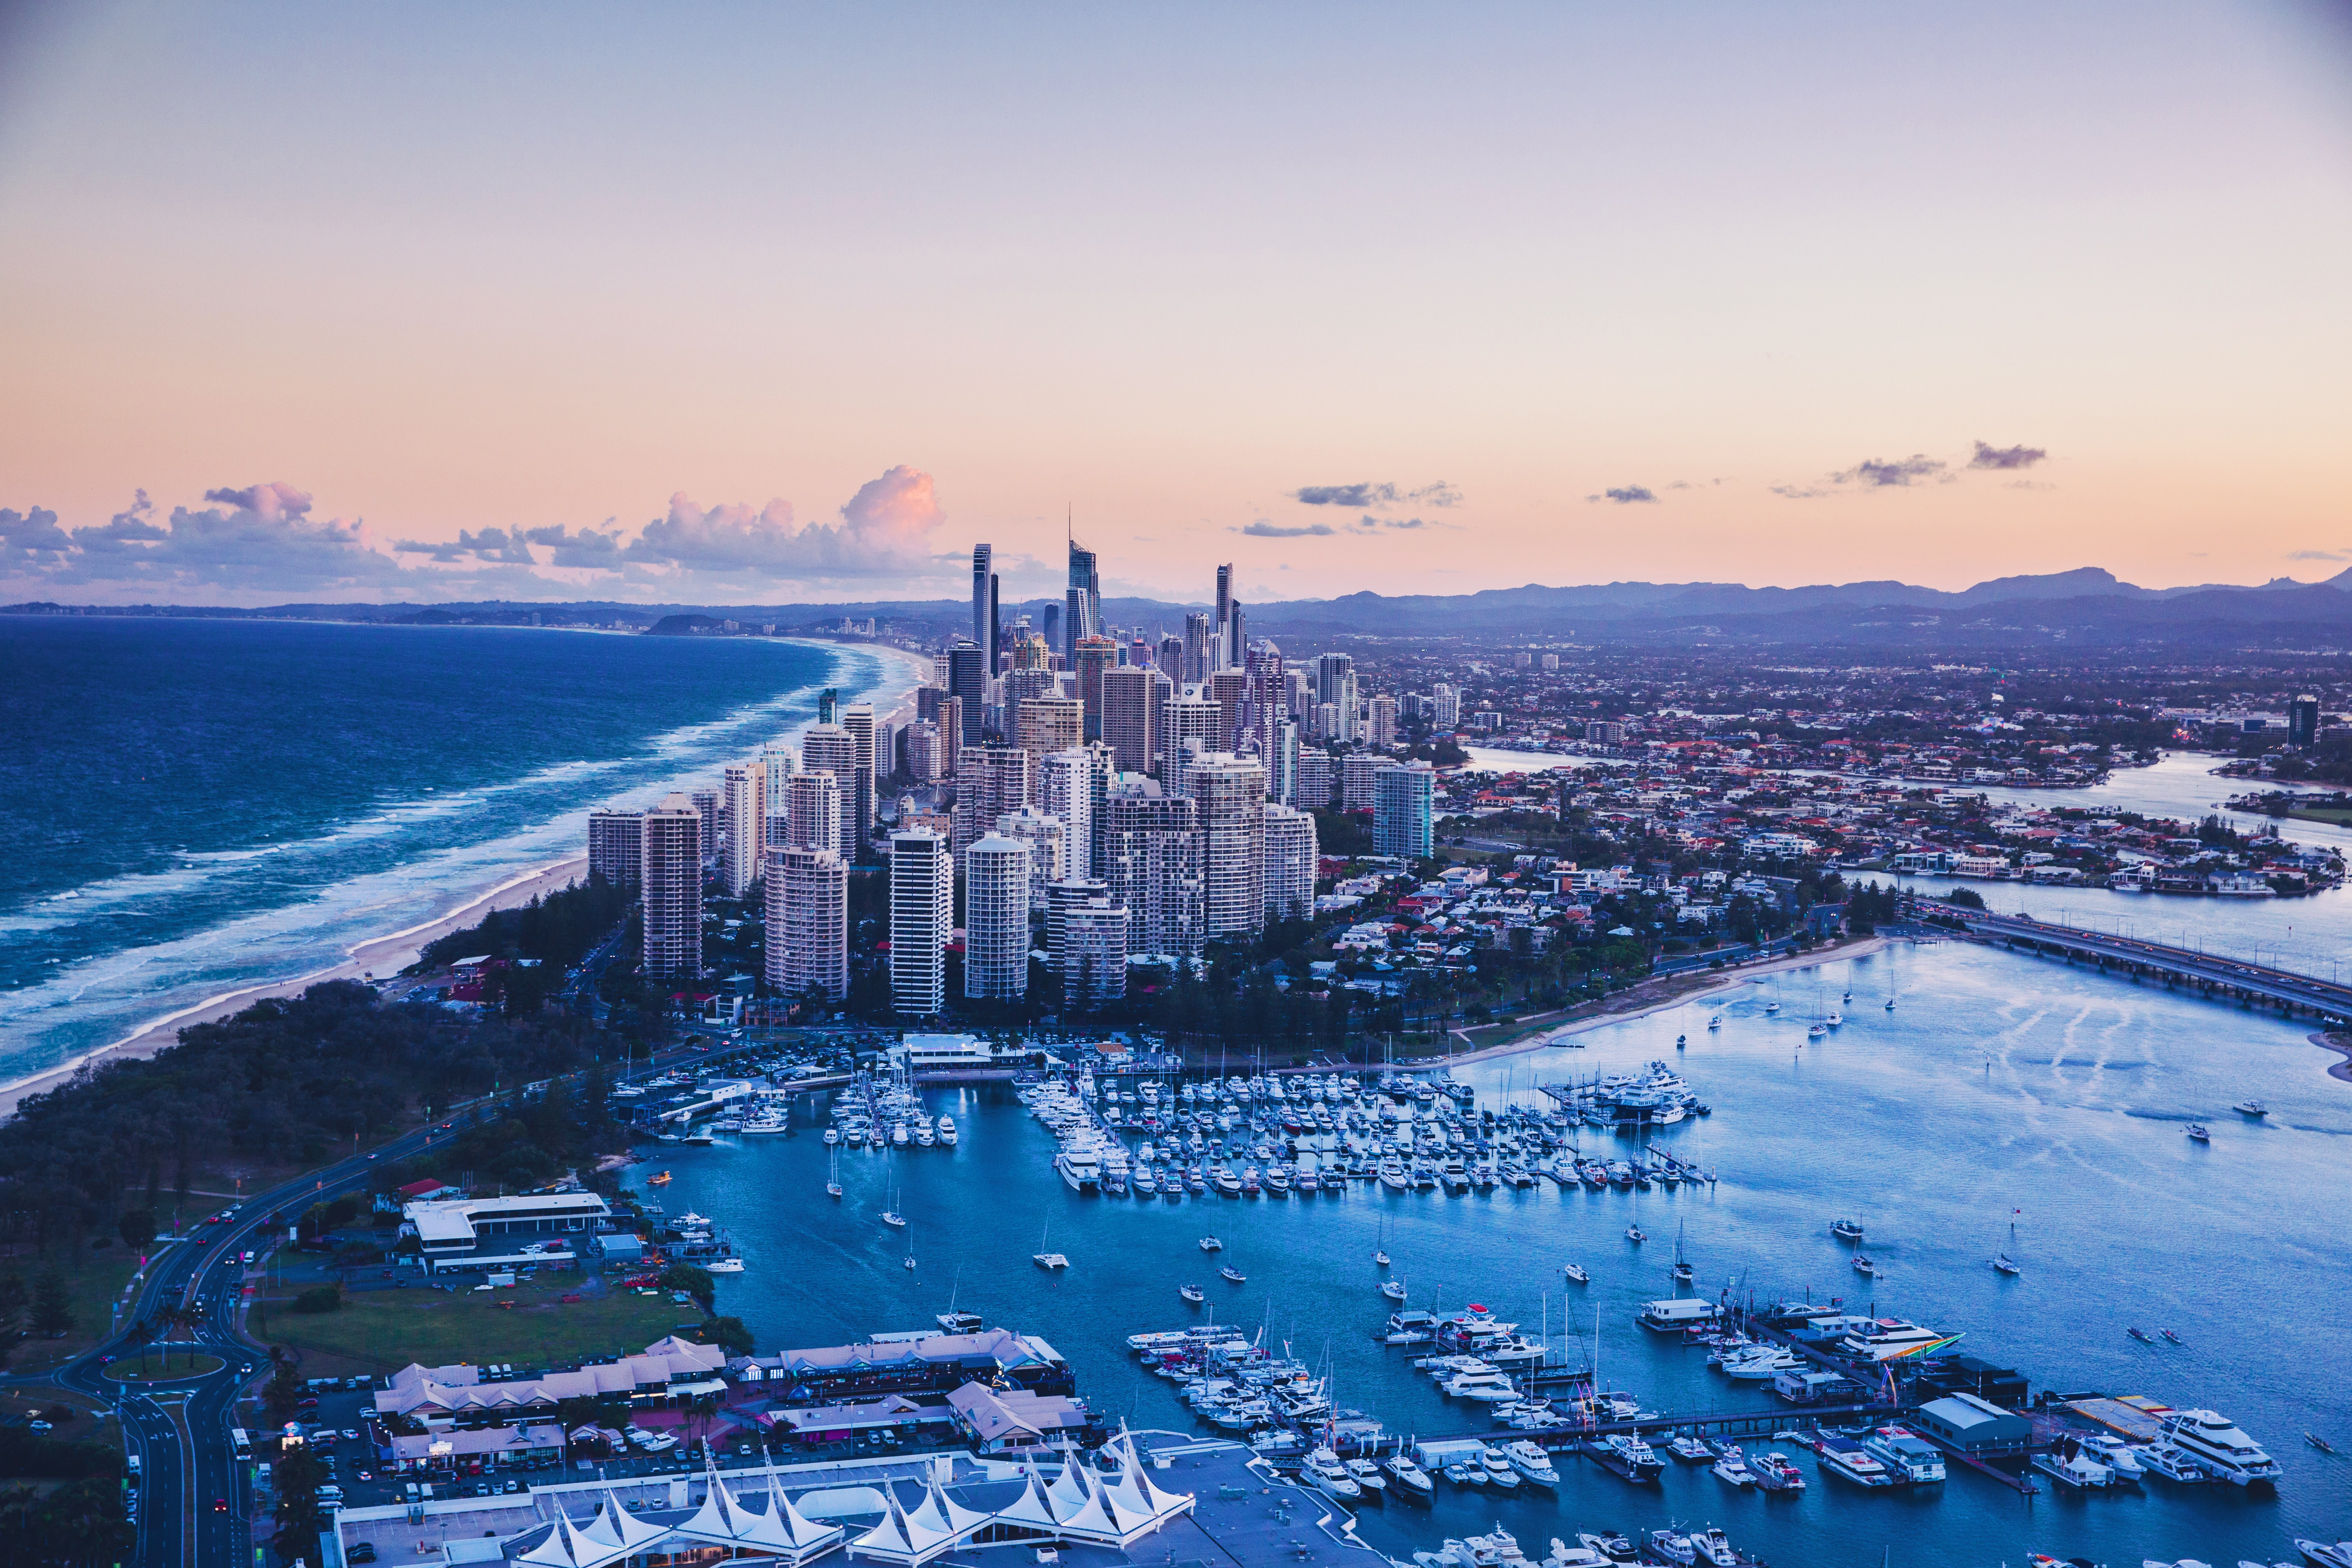 141964 download wallpaper City, View From Above, Ocean, Coast, Architecture, Cities screensavers and pictures for free